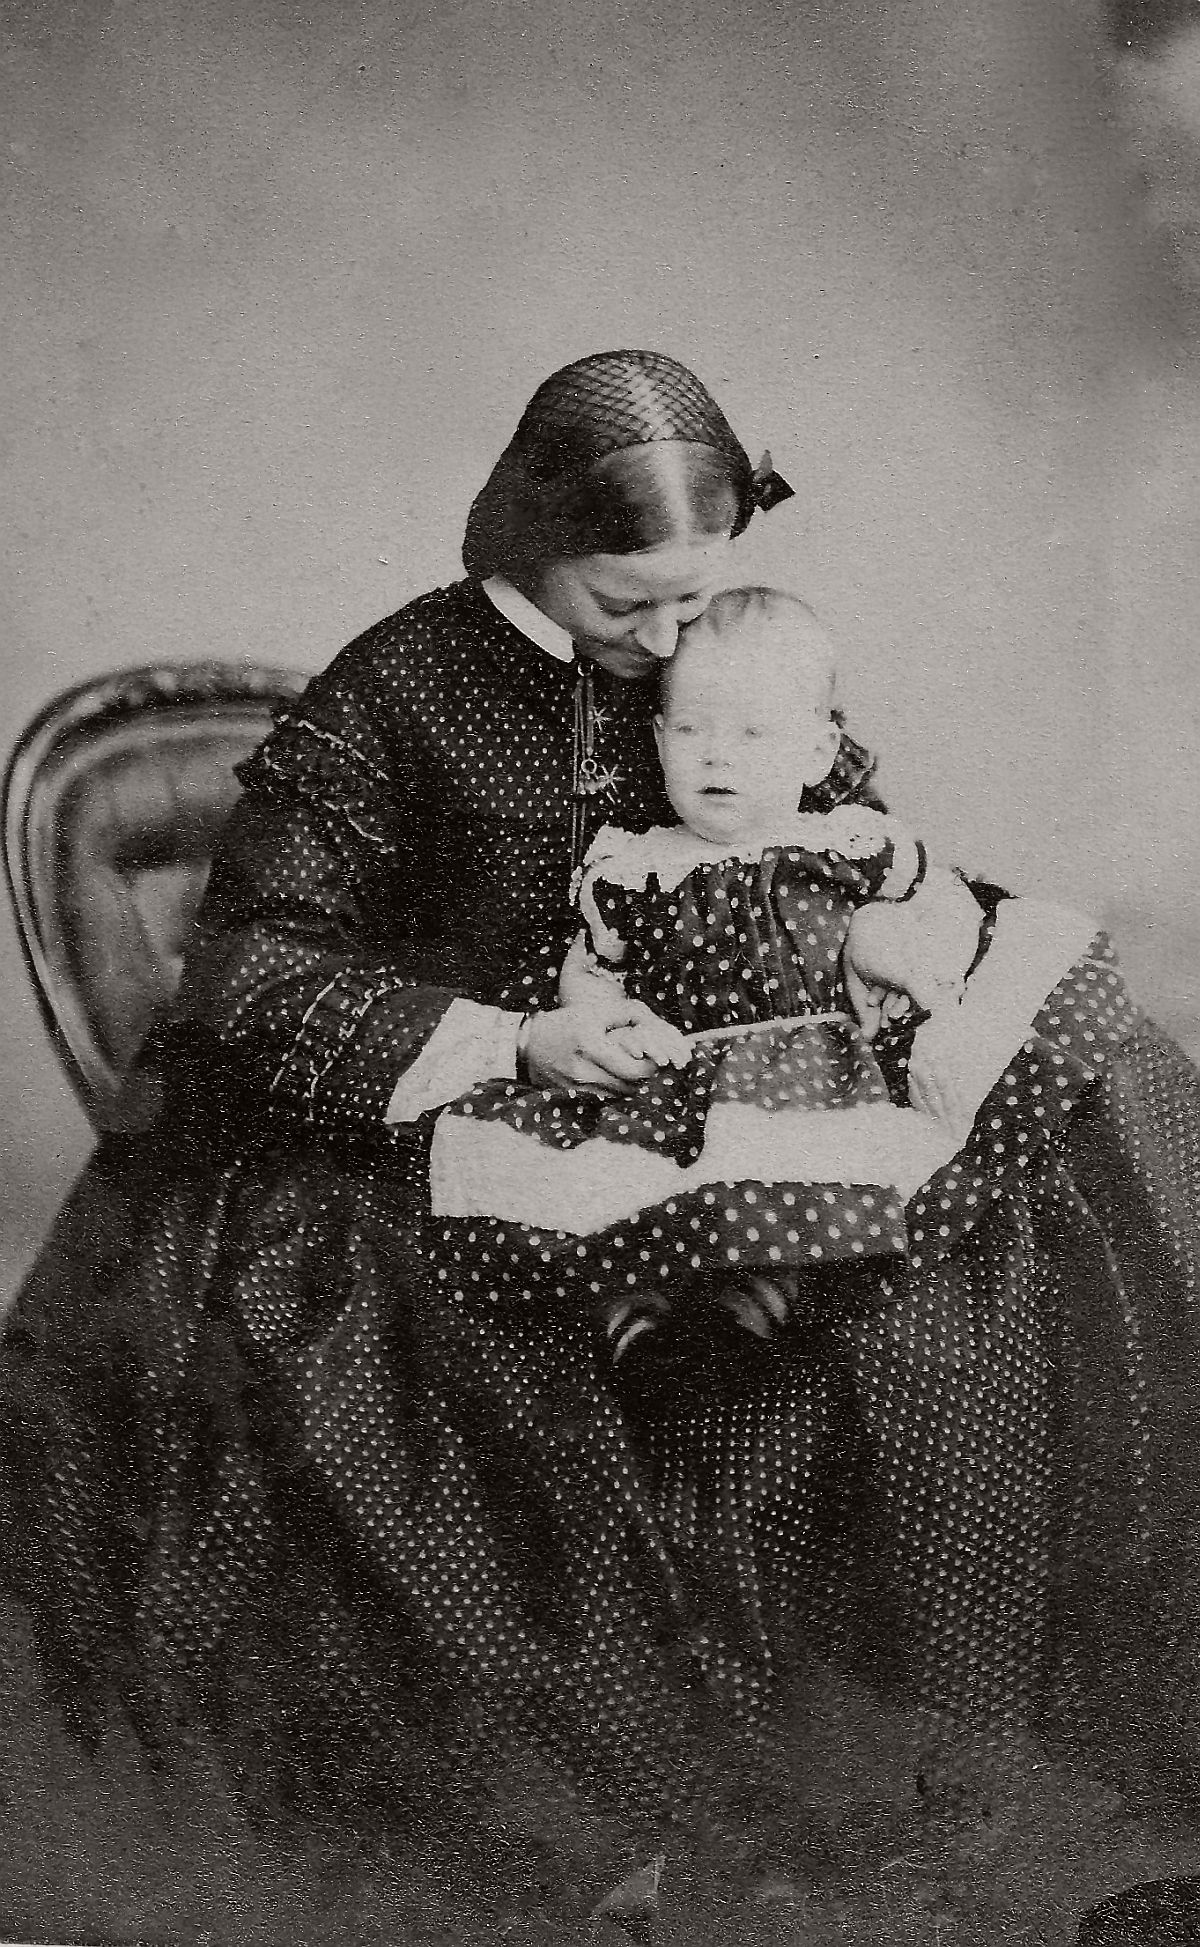 victorian-era-ambrotype-portraits-of-children-1850s-and-1860s-01